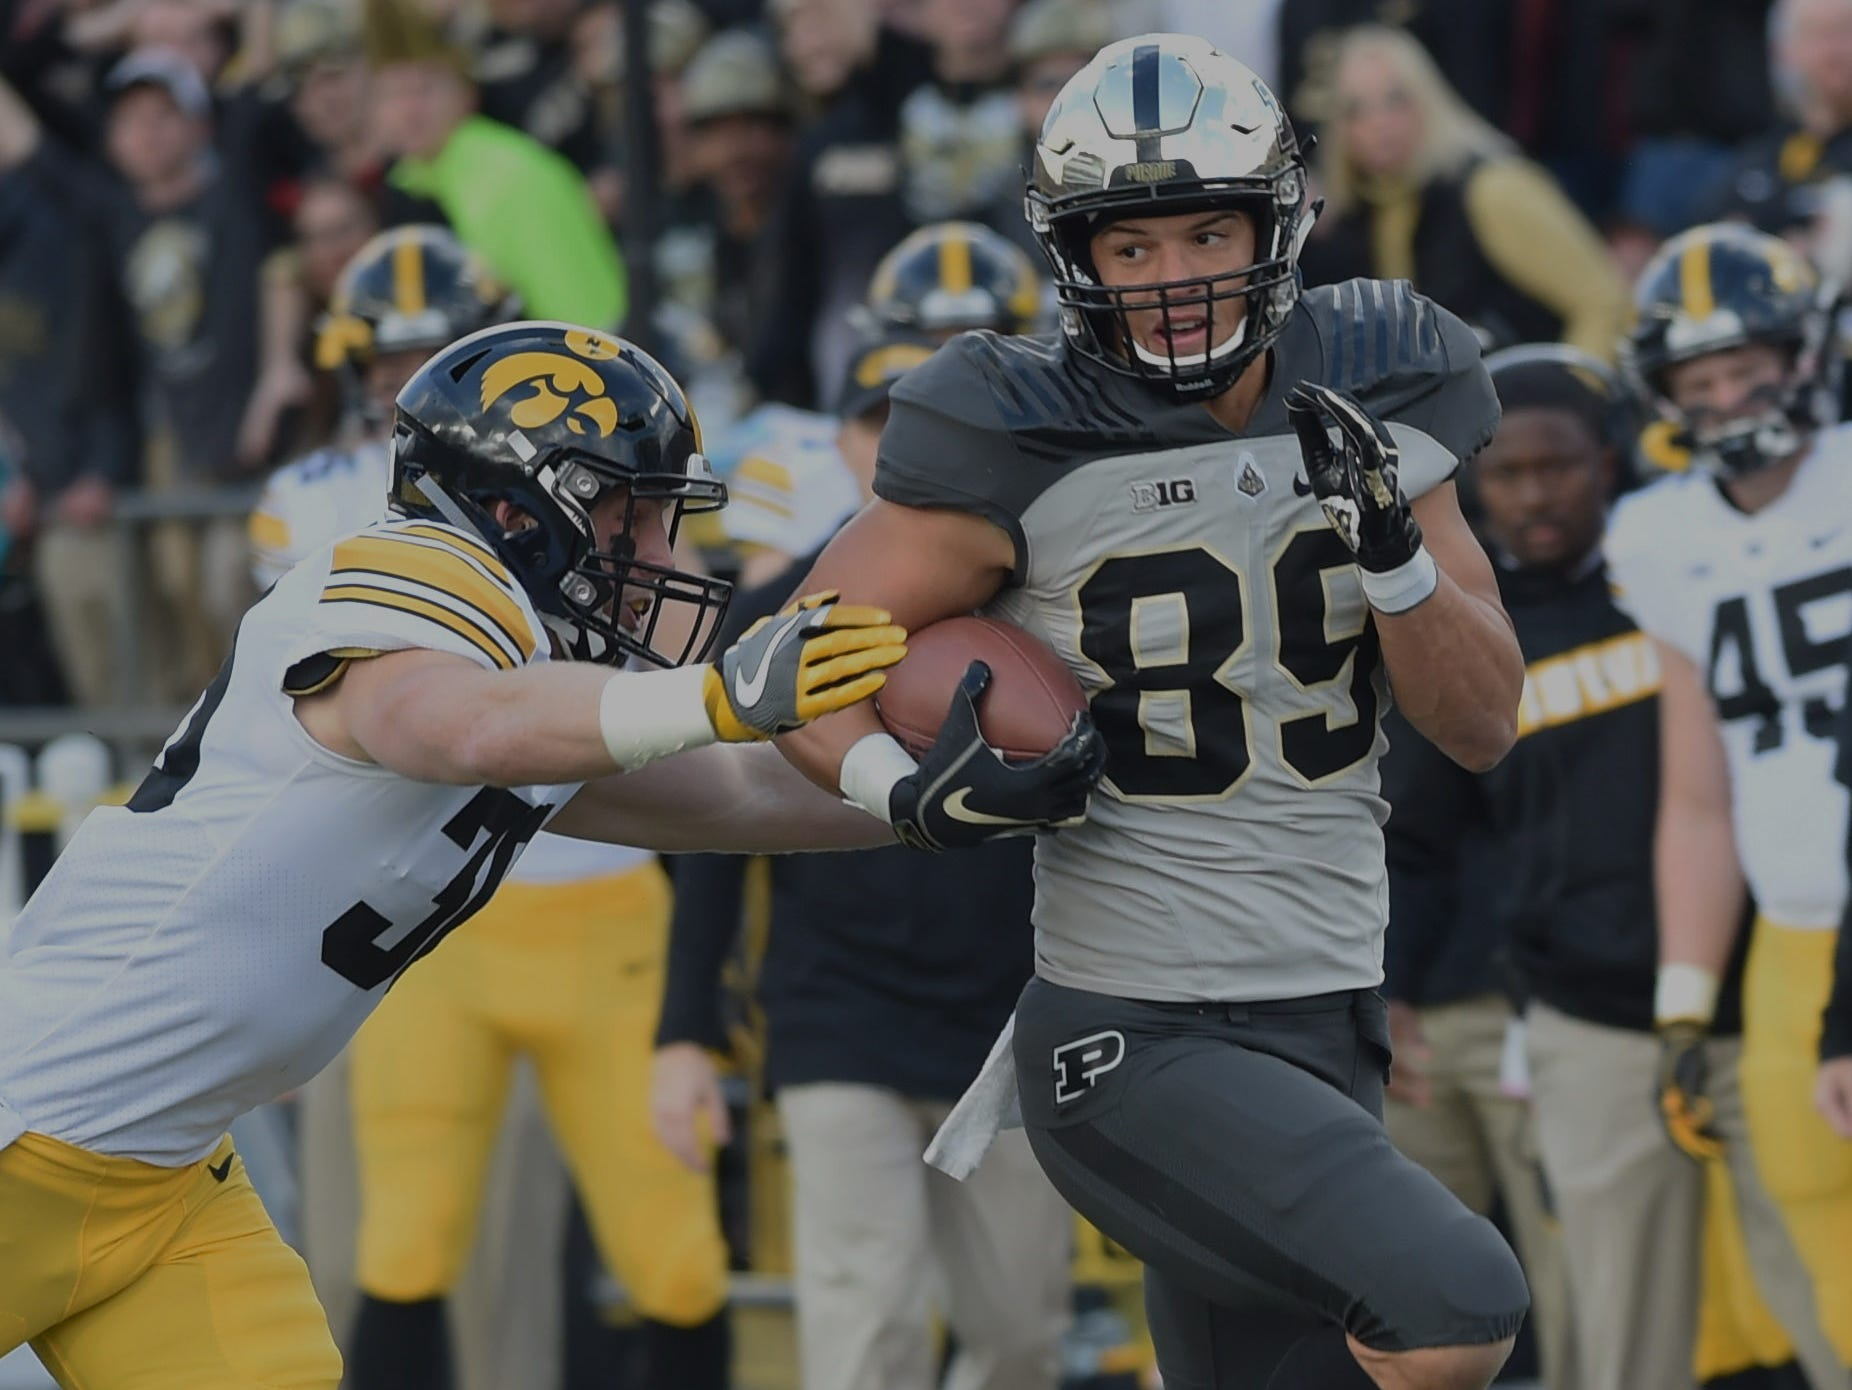 Fans had a picture perfect football afternoon Saturday as the Boilers defeated the Iowa Hawkeyes. Brycen Hopkins